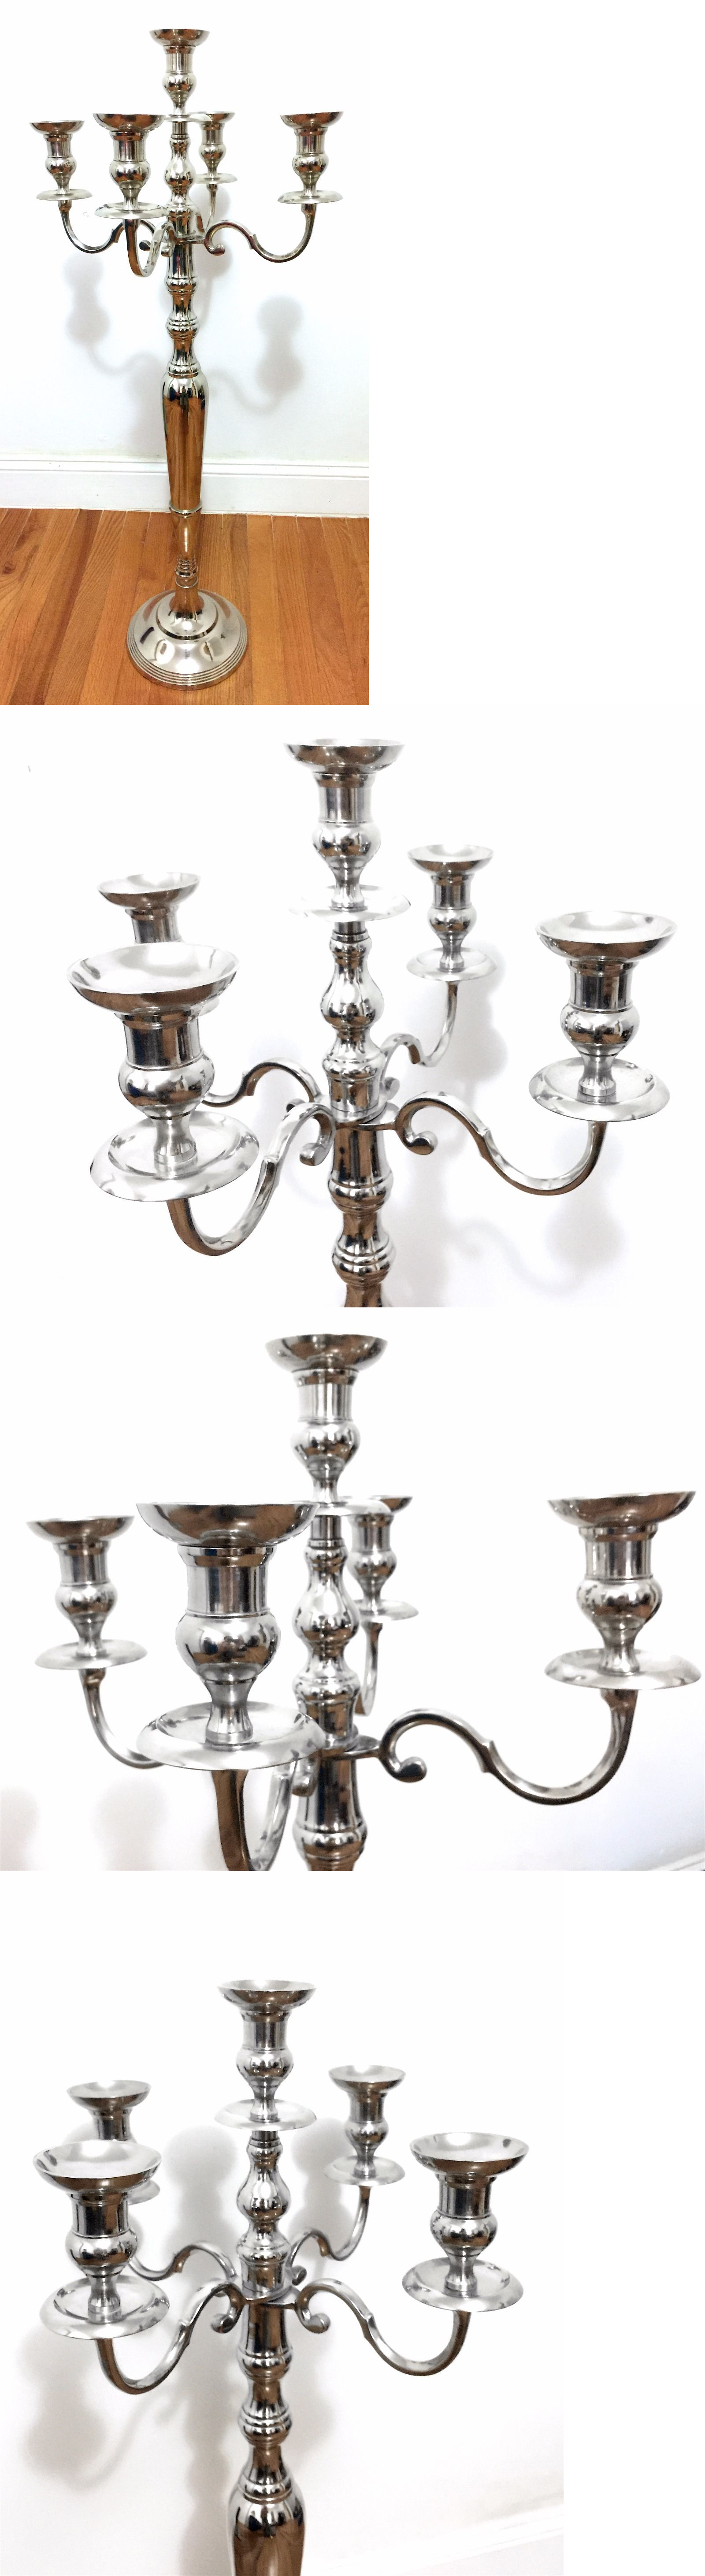 Candle Holders and Accessories 16102: Tall Silver Candelabra Wedding ...